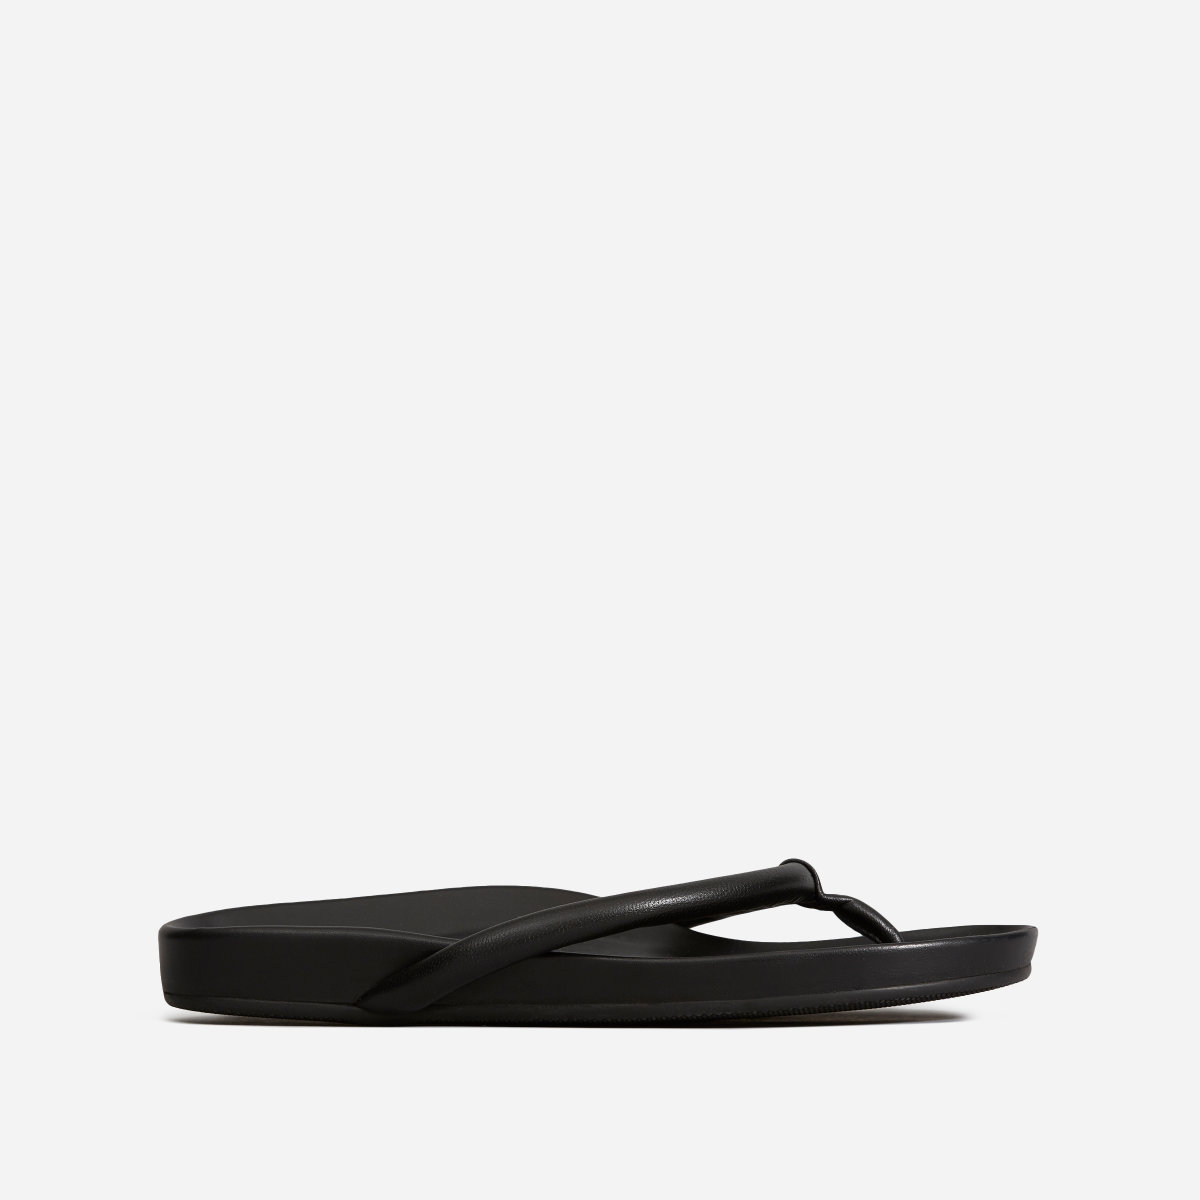 The Form Thong Sandal